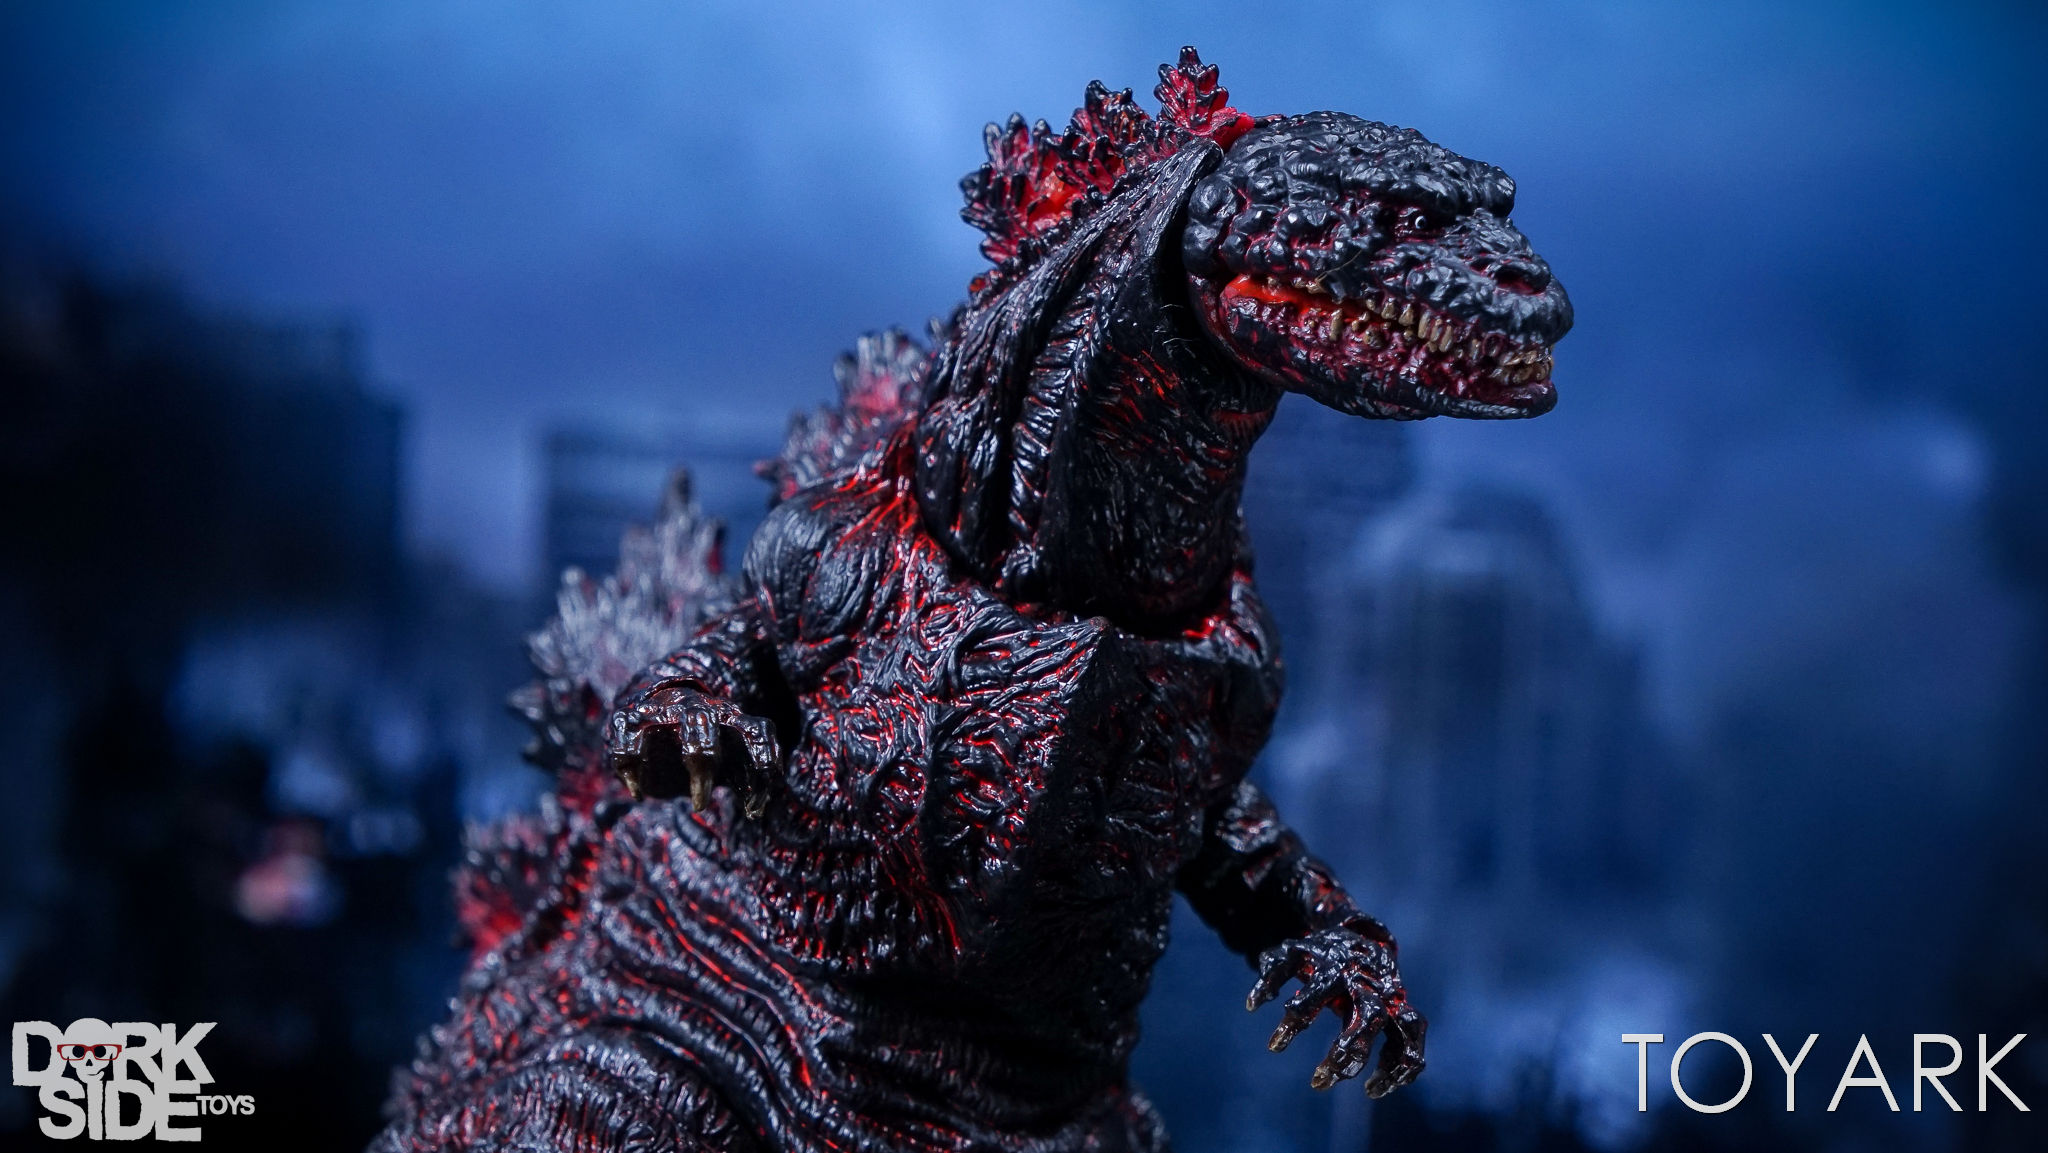 http://news.toyark.com/wp-content/uploads/sites/4/2017/05/Shin-Godzilla-Figure-NECA-029.jpg